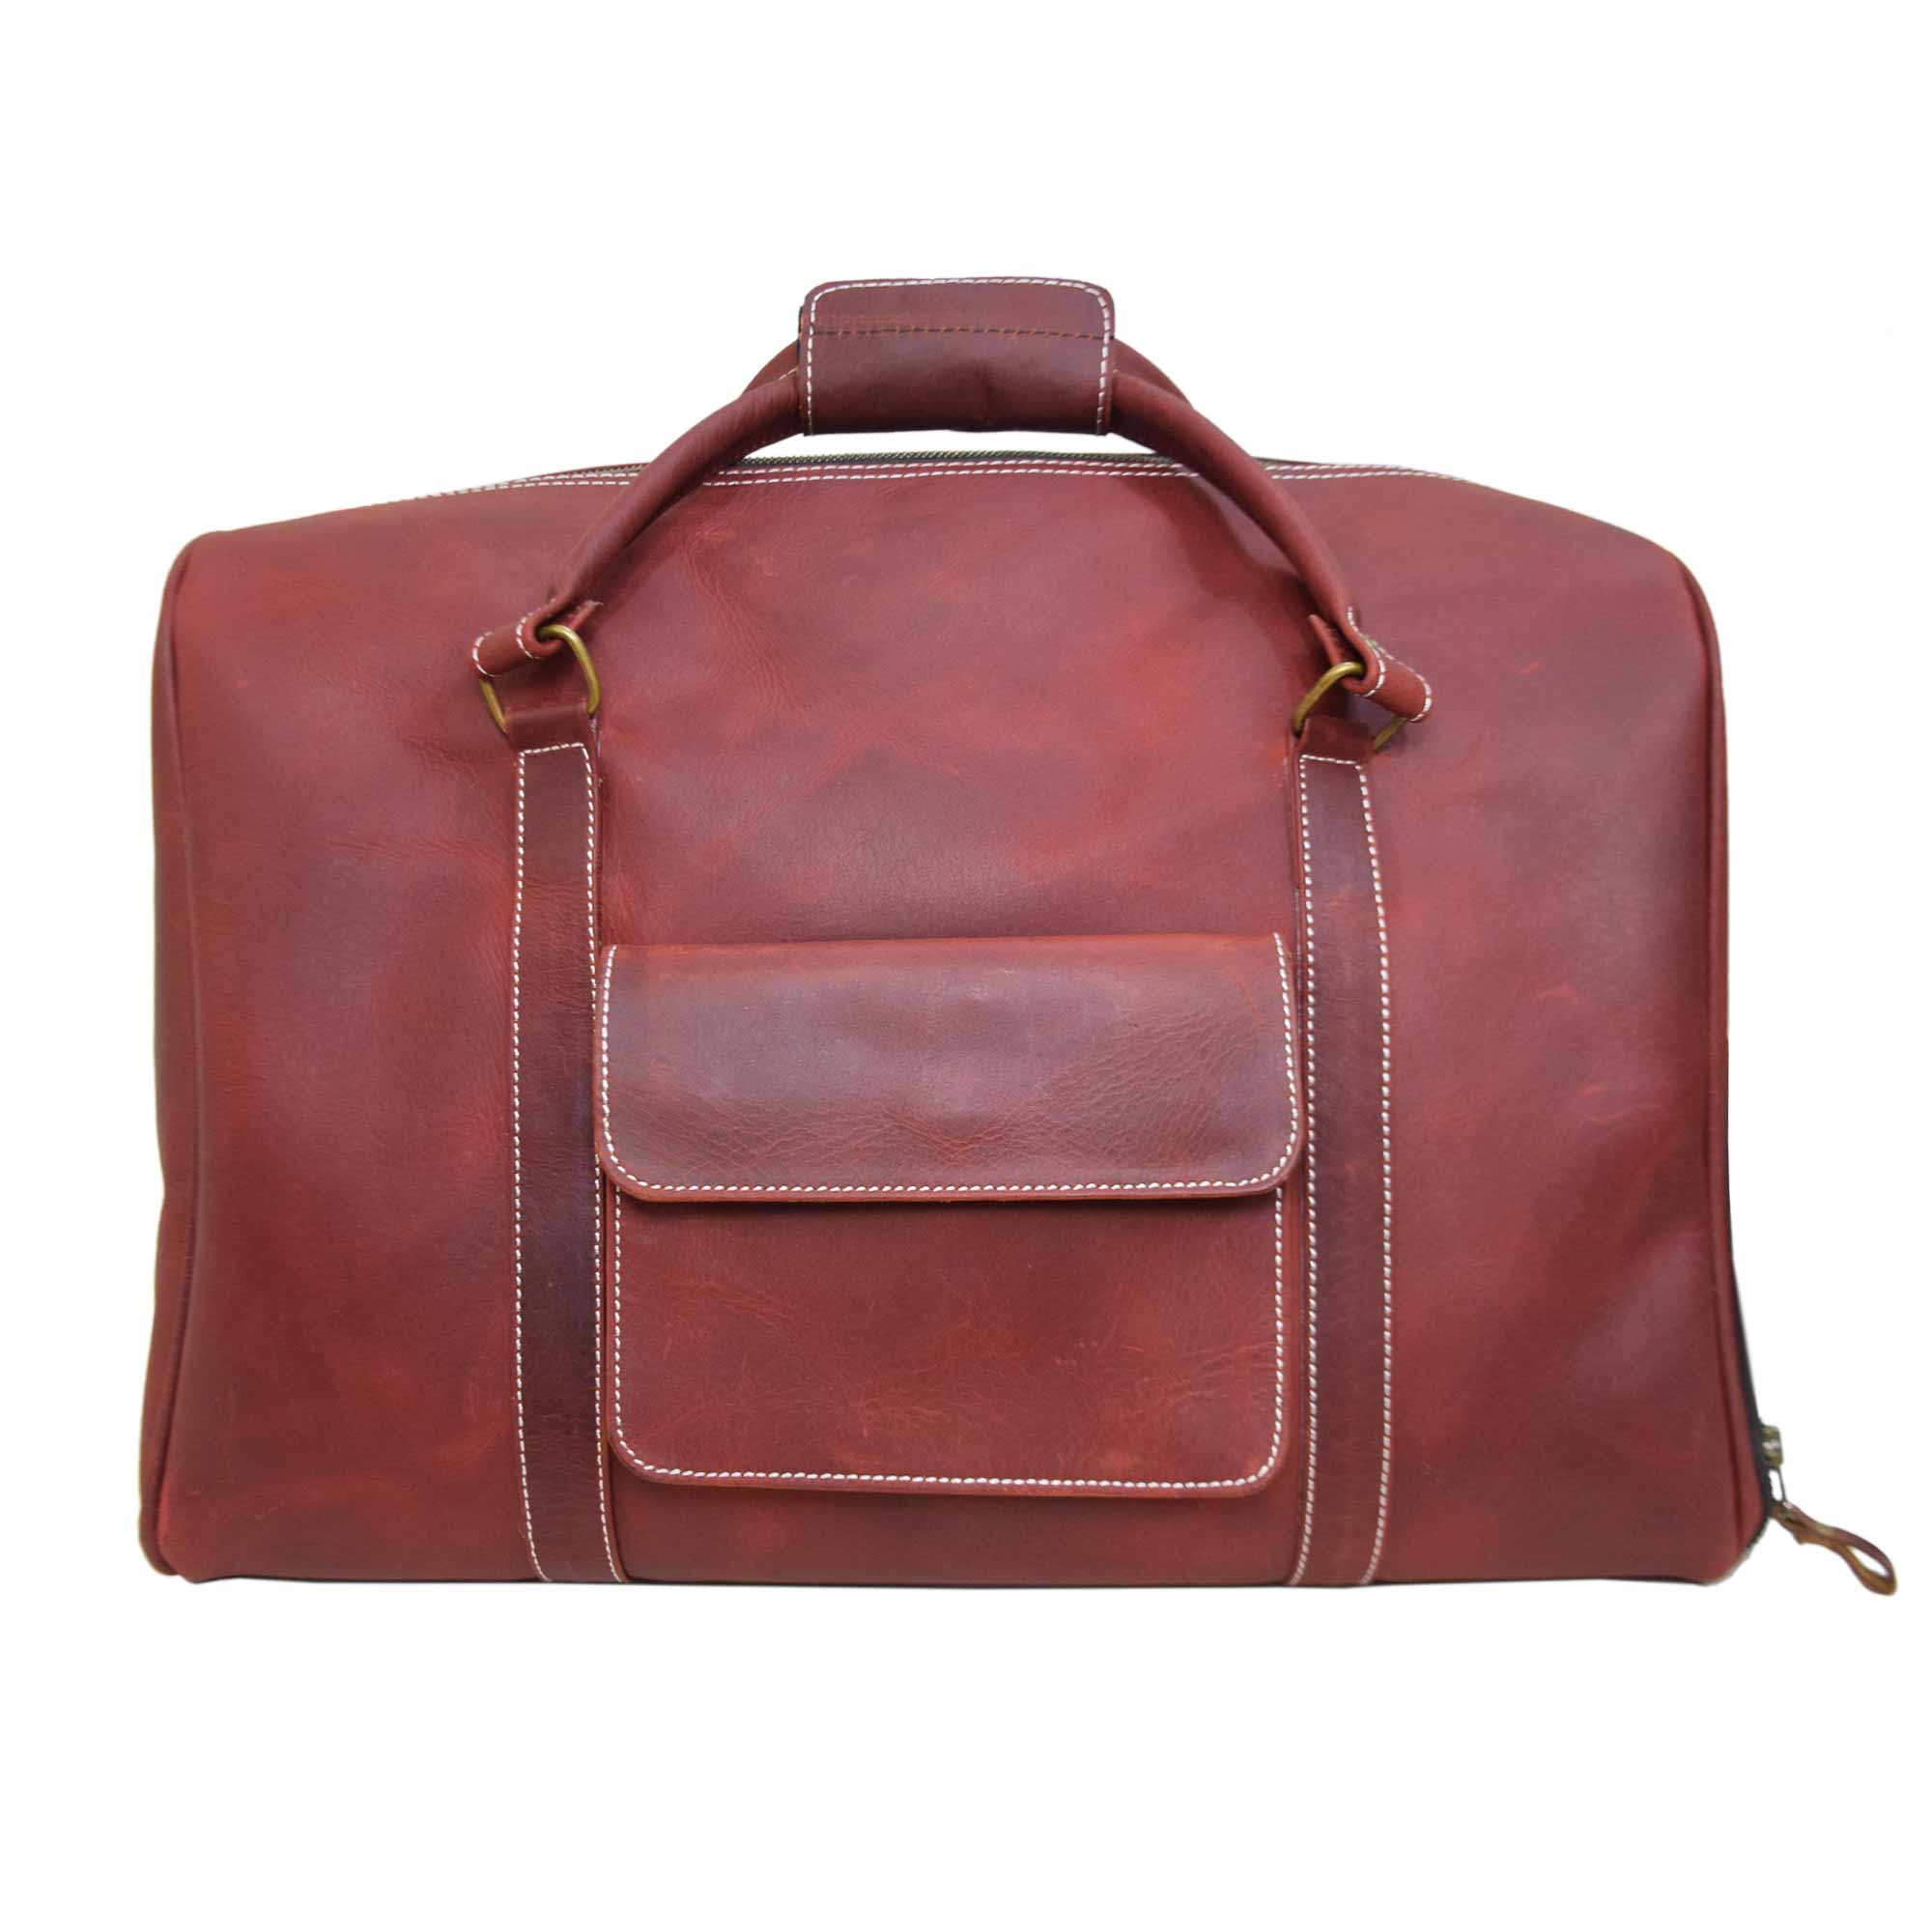 MAROON WEEKEND BAG WITH UNIQUE SIMPLE LOOK